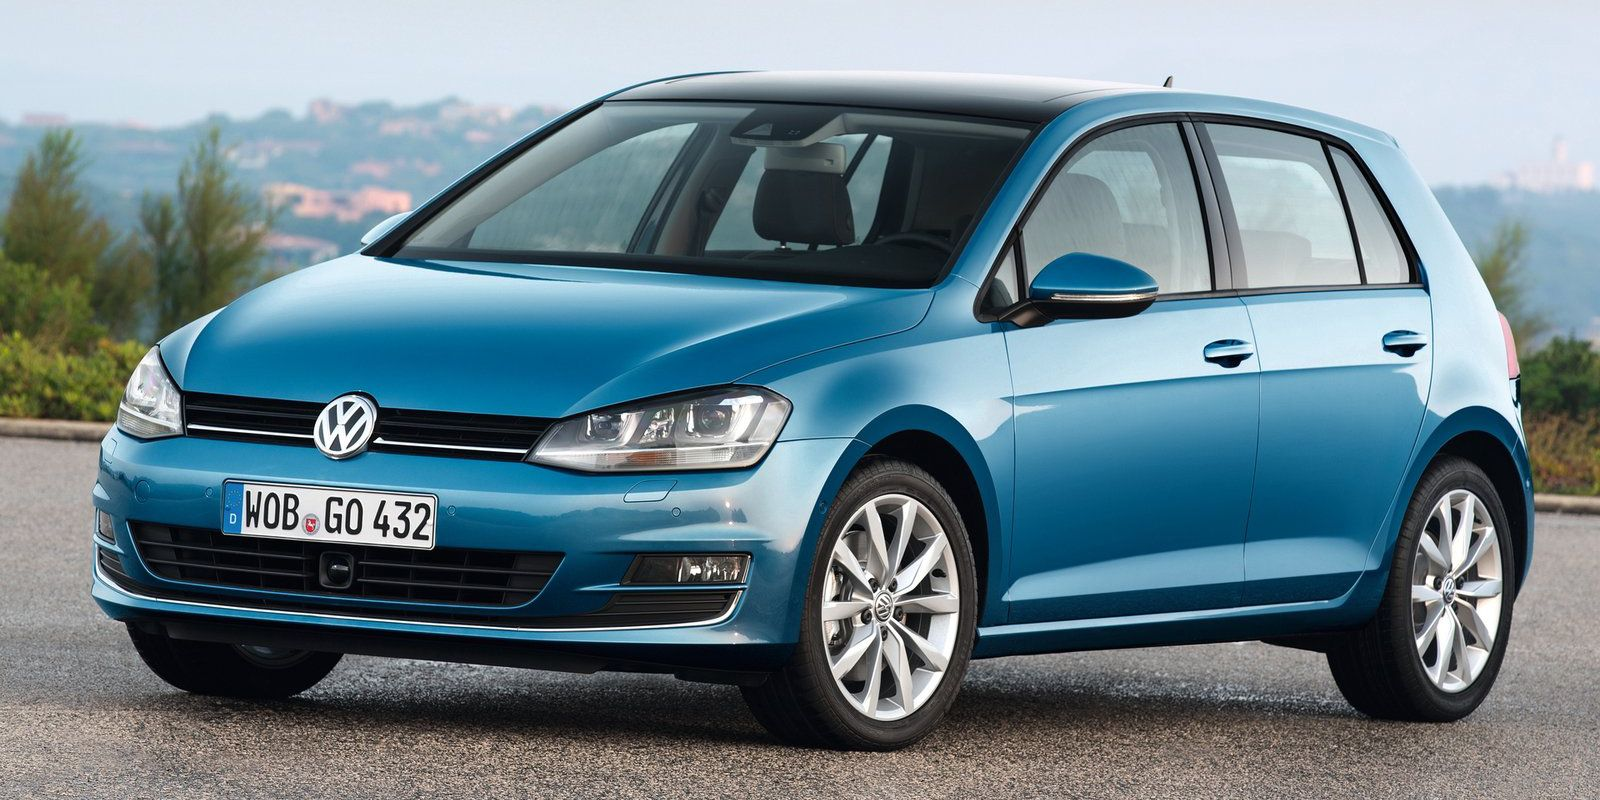 """<p>We'd love it if <a href=""""http://www.roadandtrack.com/new-cars/first-drives/reviews/a4322/first-drive-2015-volkswagen-gti-review/"""" target=""""_blank"""">the GTI</a> still made this list, but unfortunately, the days of a sub-$25,000 GTI have past. But what you <em>can</em> still get is a regular Golf with a manual. Pick either two or four doors, and you'll have an outstanding hatchback that will still <a href=""""http://www.caranddriver.com/volkswagen/golf"""" target=""""_blank"""">hit 60 mph in less than seven seconds</a>. </p>"""